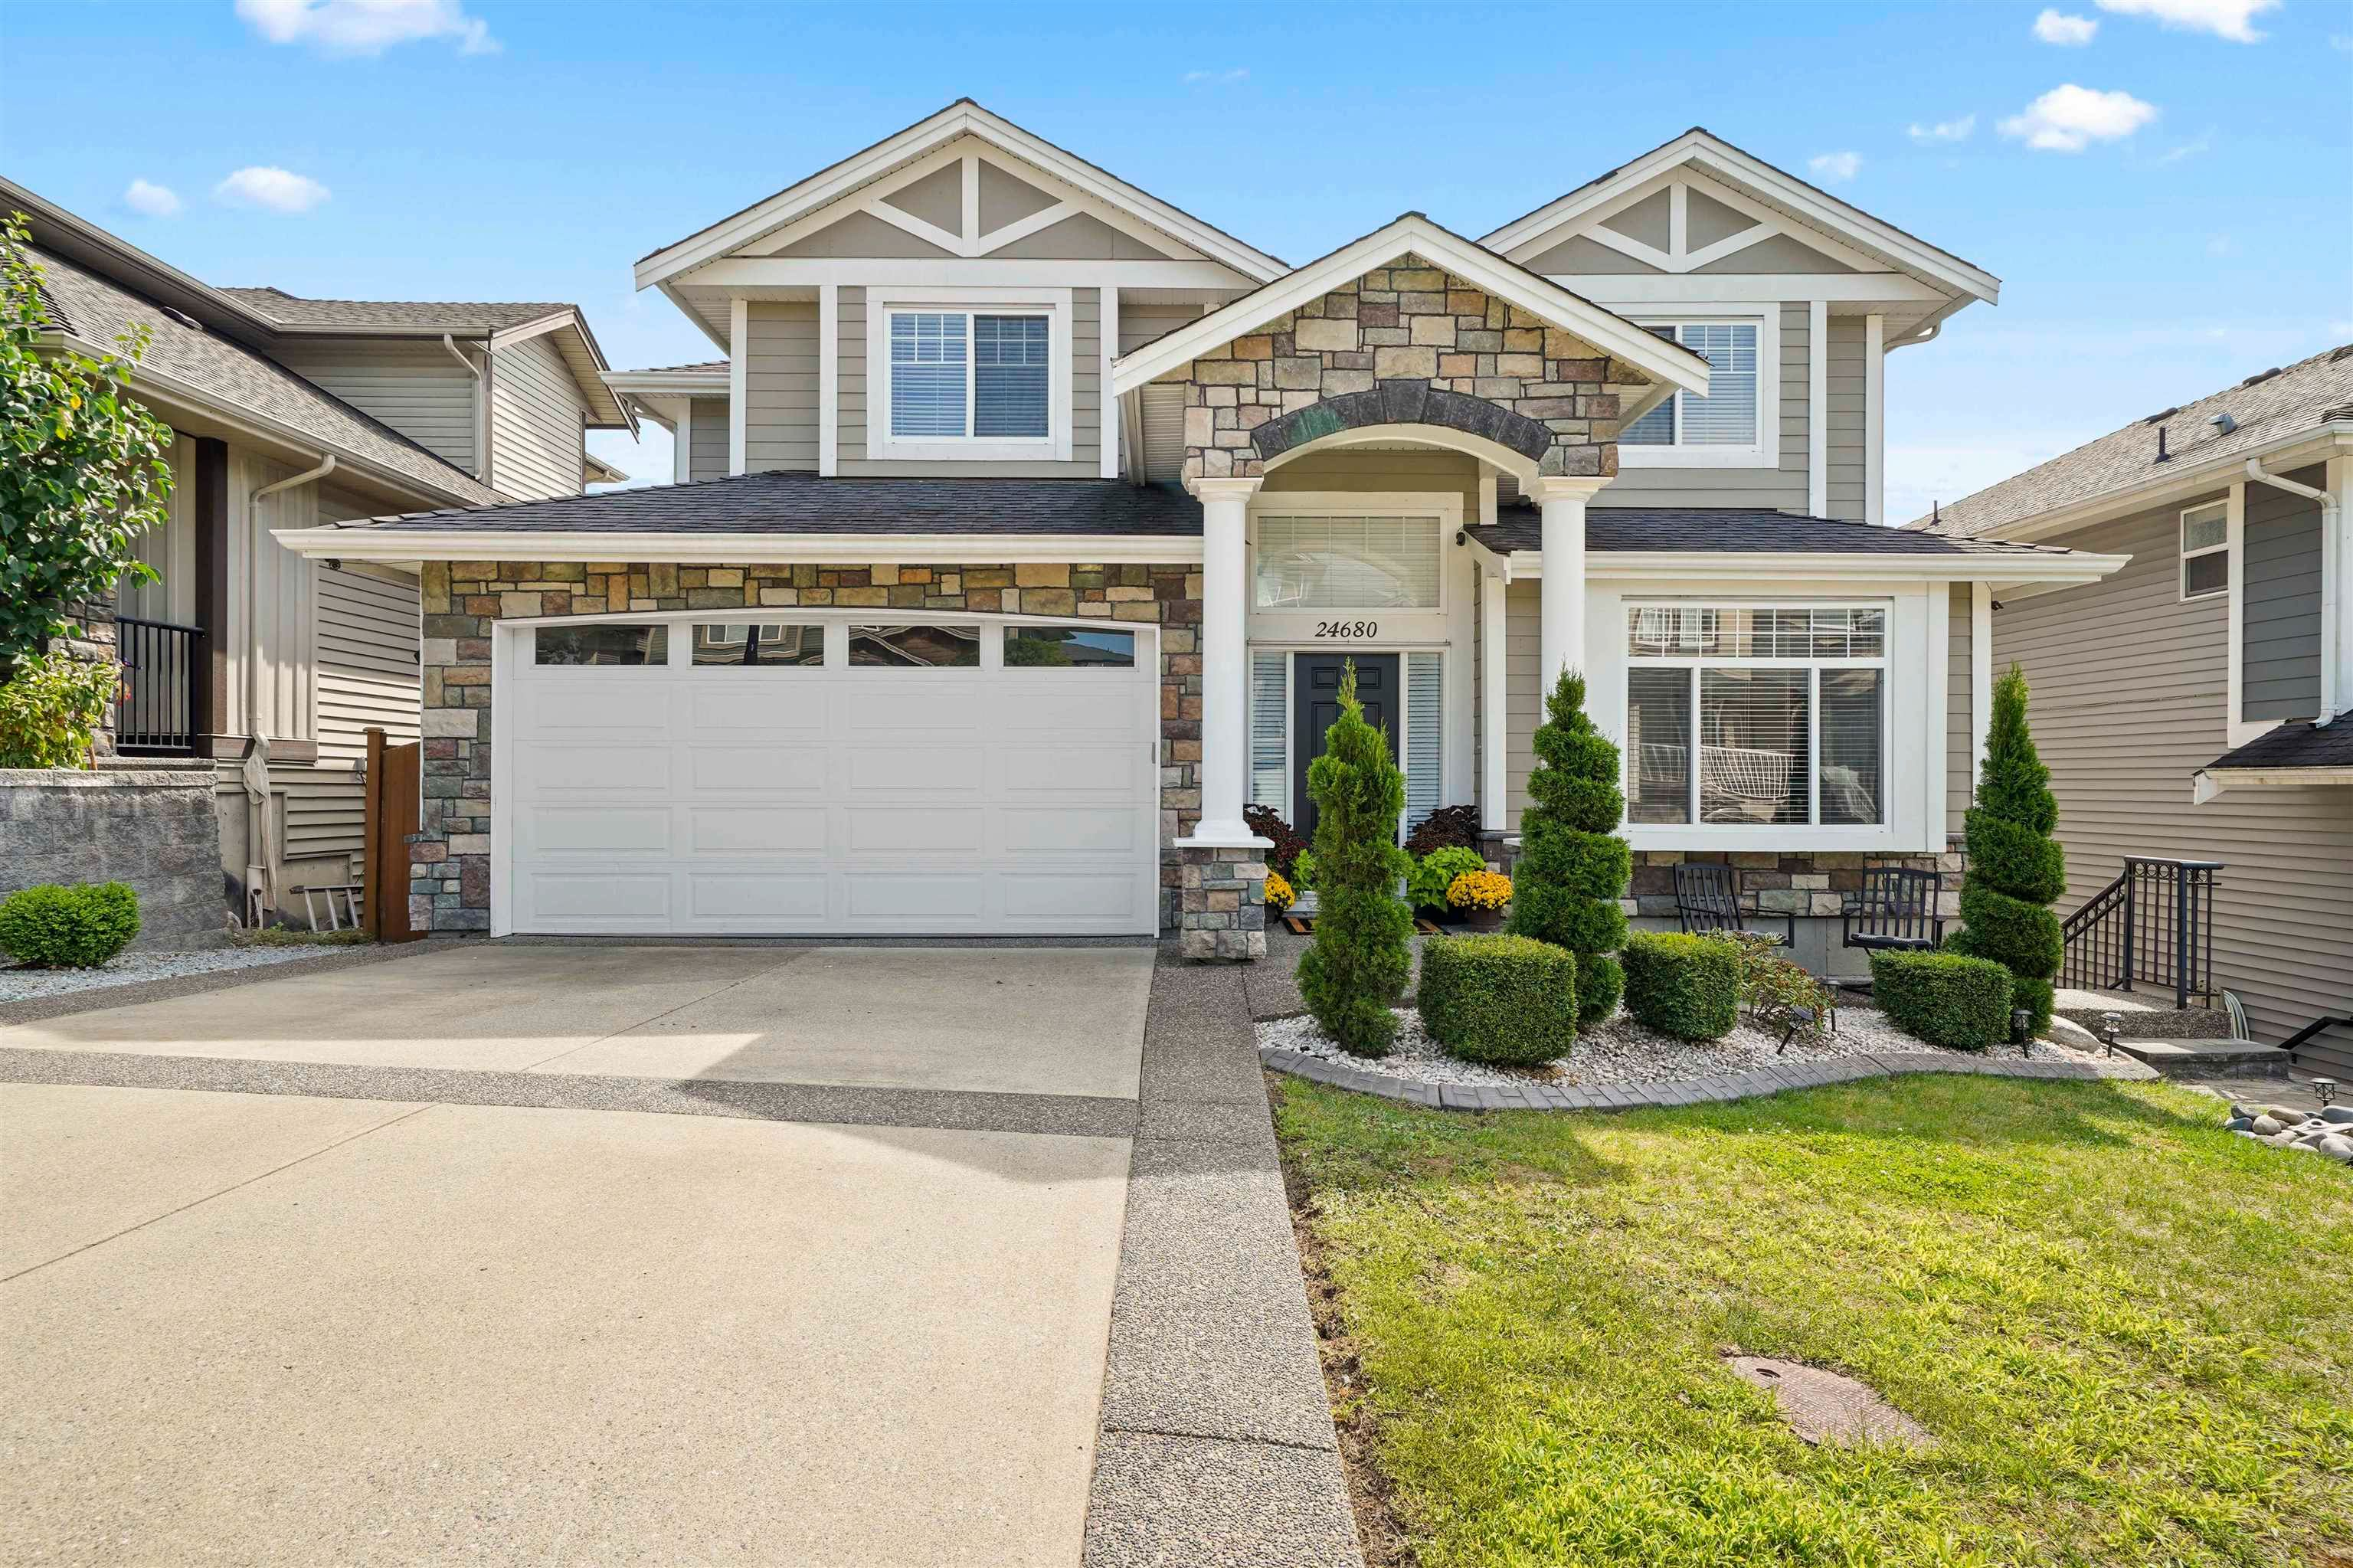 """Main Photo: 24680 103A Avenue in Maple Ridge: Albion House for sale in """"Thornhill Heights"""" : MLS®# R2612314"""